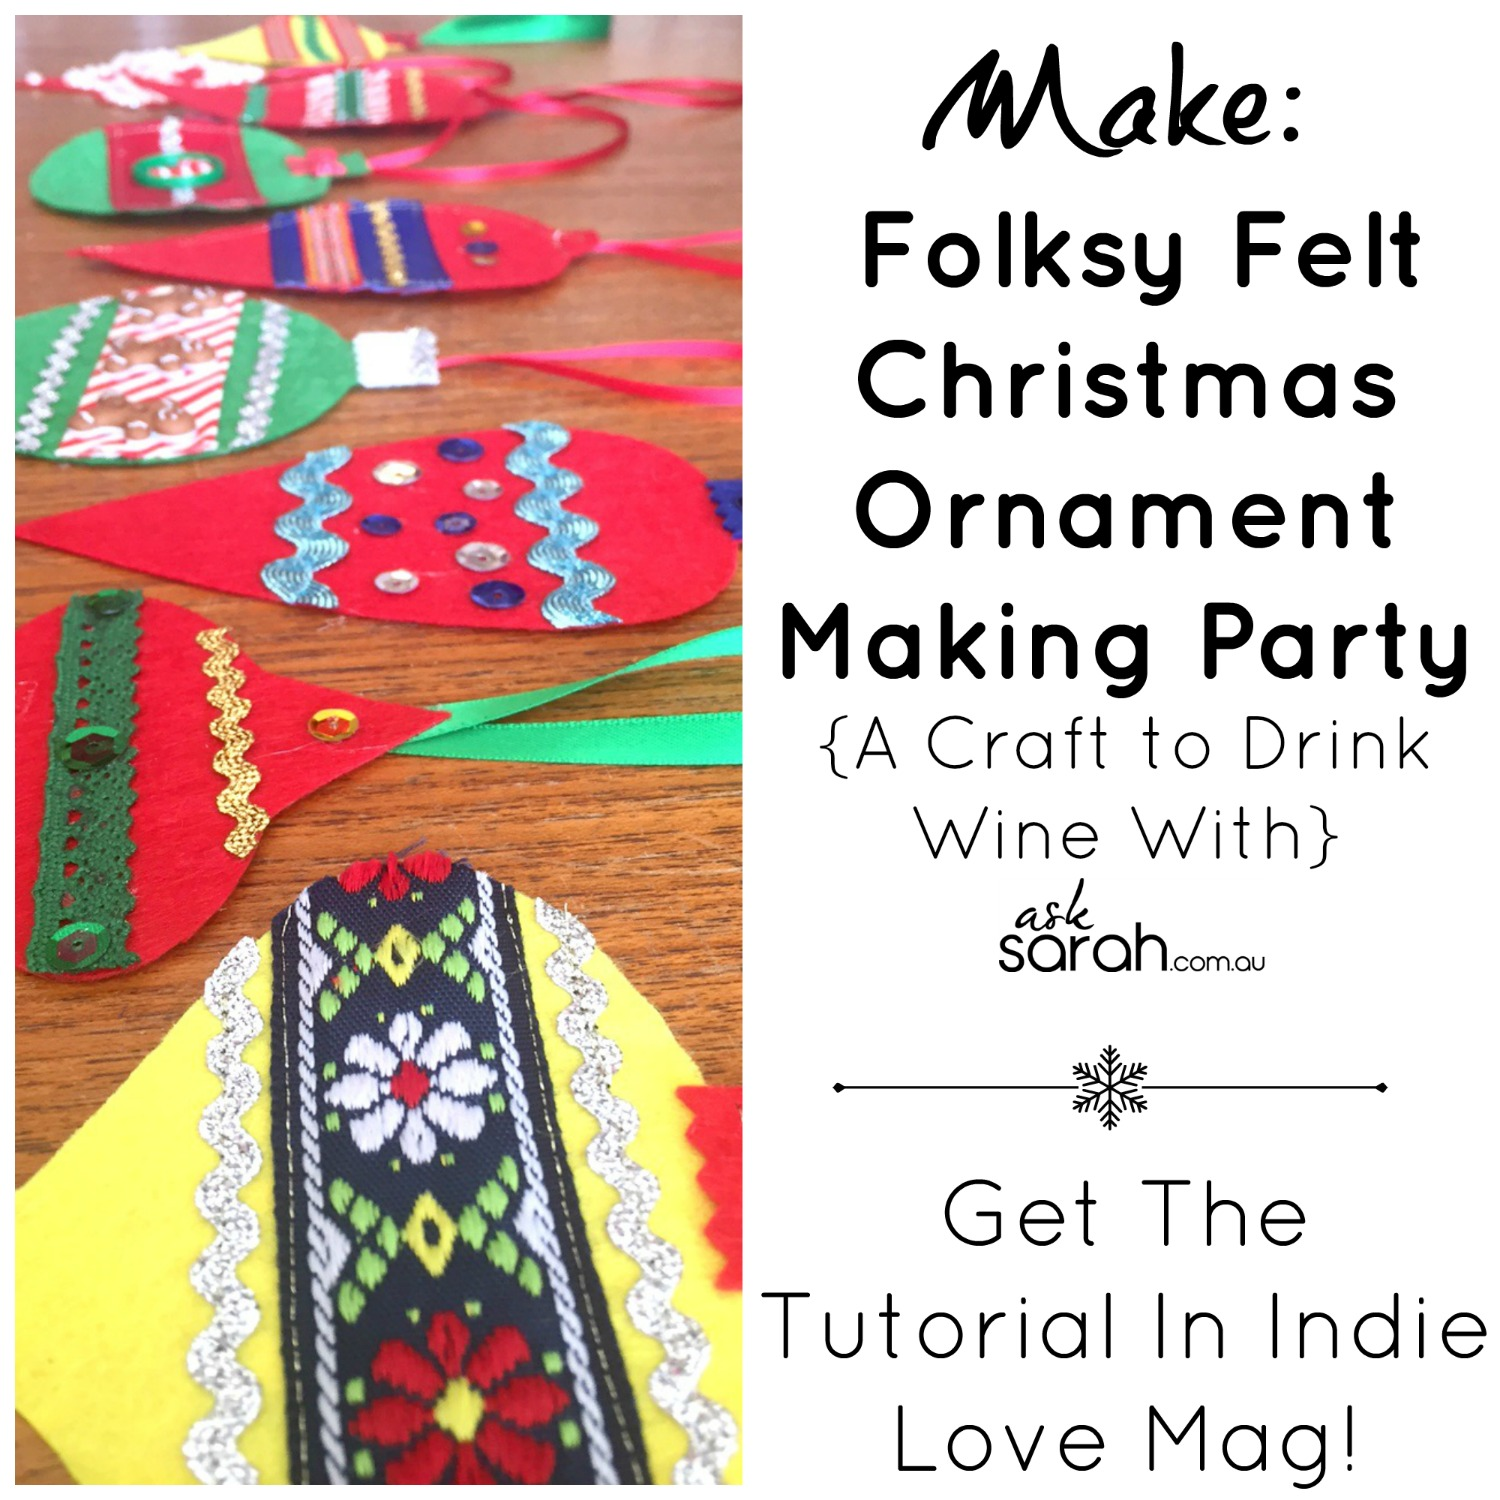 make-folksy-felt-christmas-ornament-making-party-a-craft-to-drink-wine-with-get-the-tutorial-in-indie-love-mag